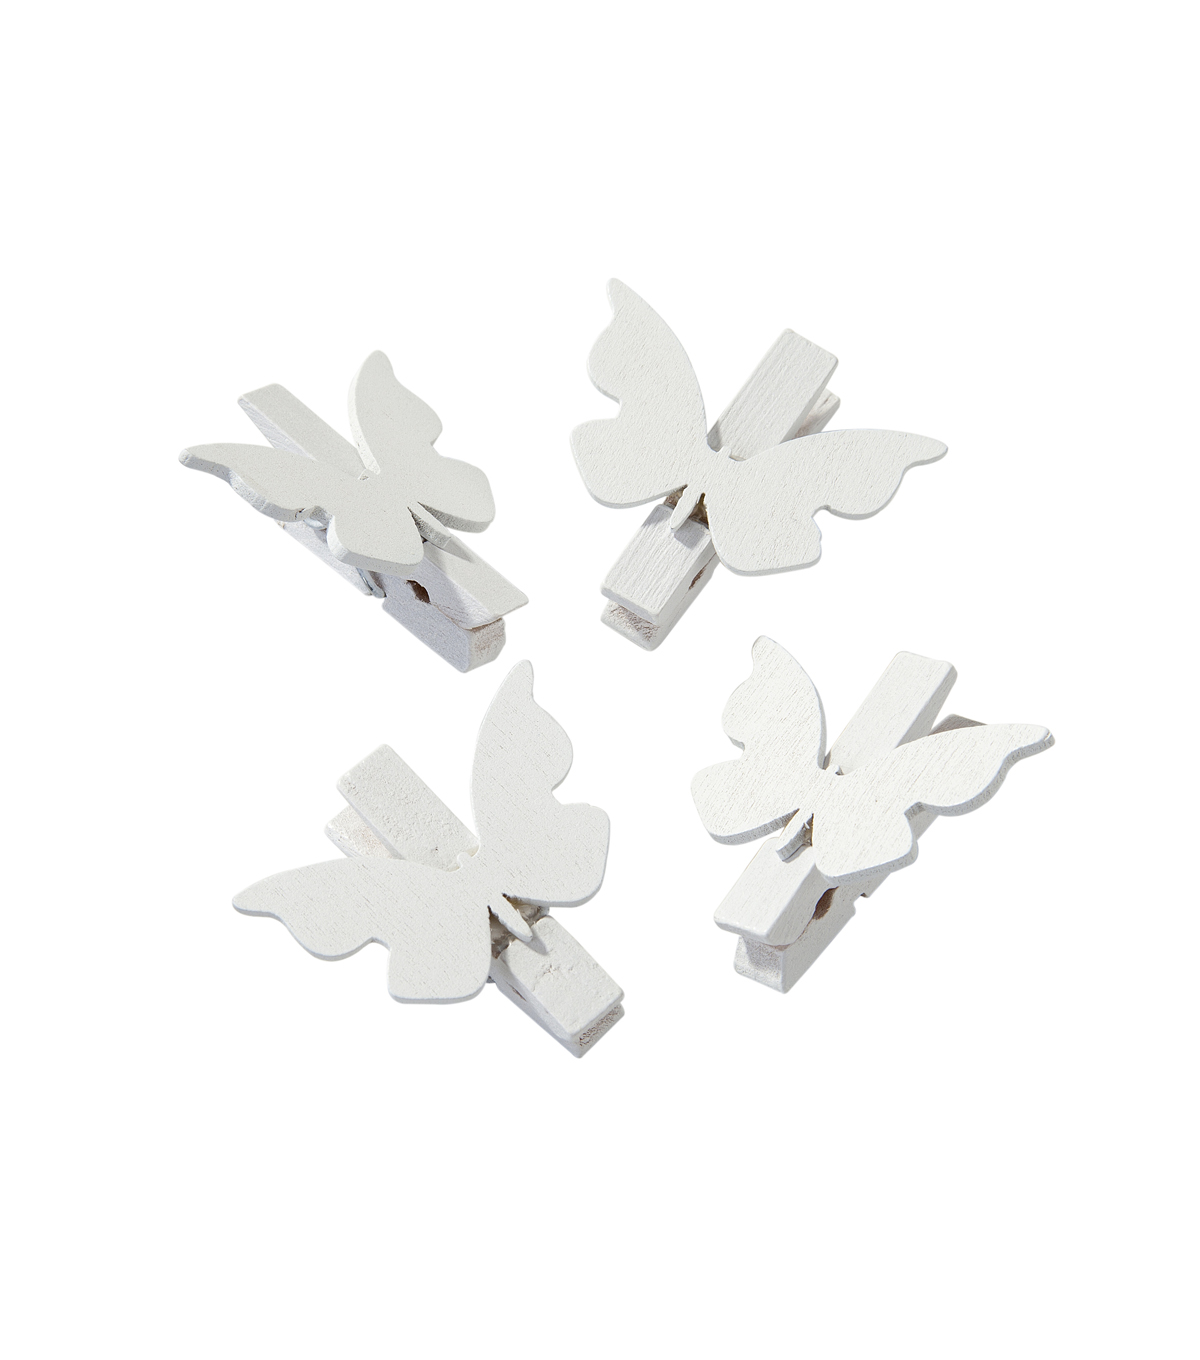 Something In The Air White Butterfly Pegs 20pk